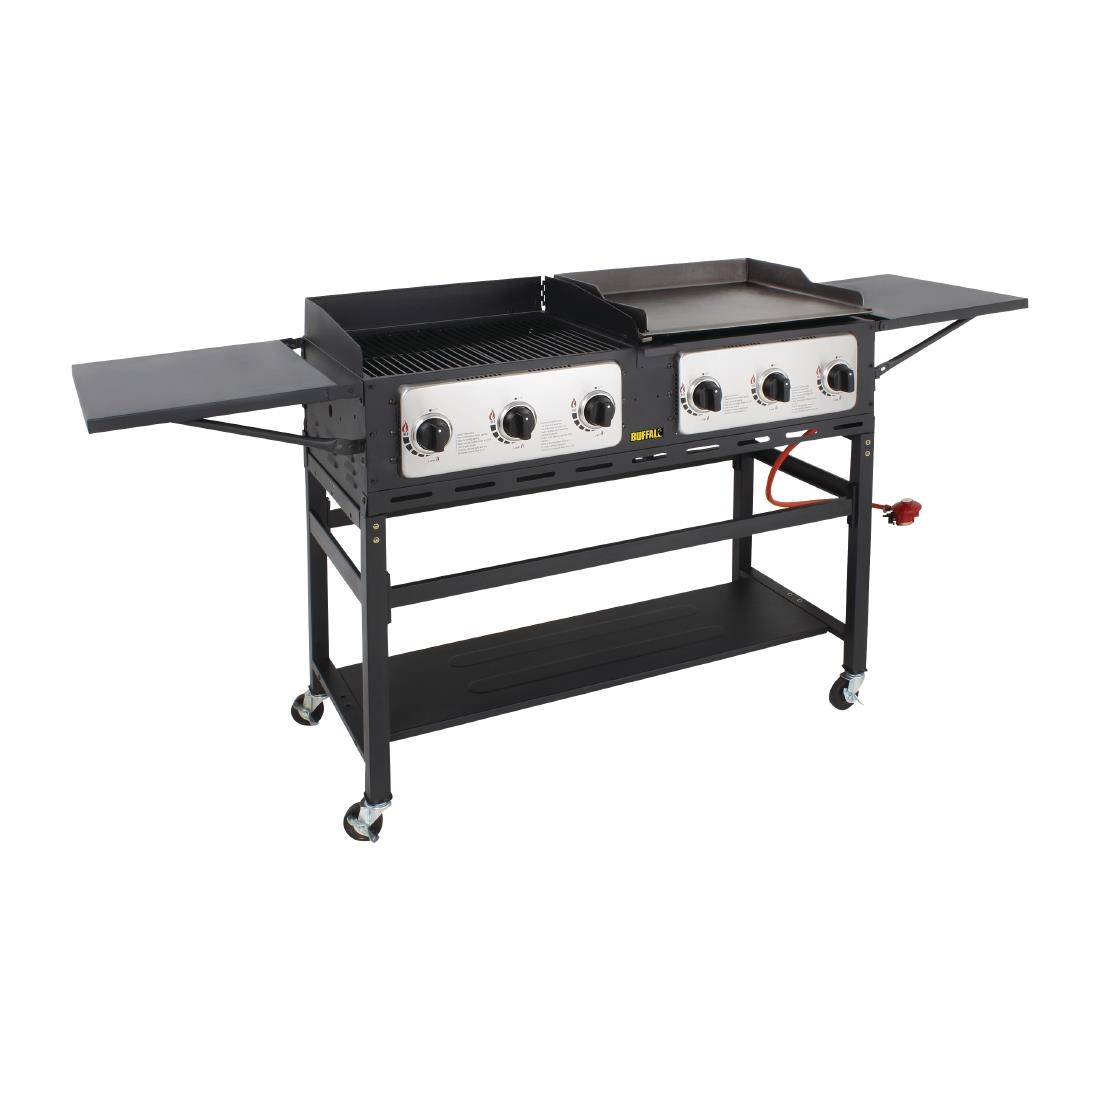 Image of Buffalo 6 Burner Combi BBQ Grill and Griddle